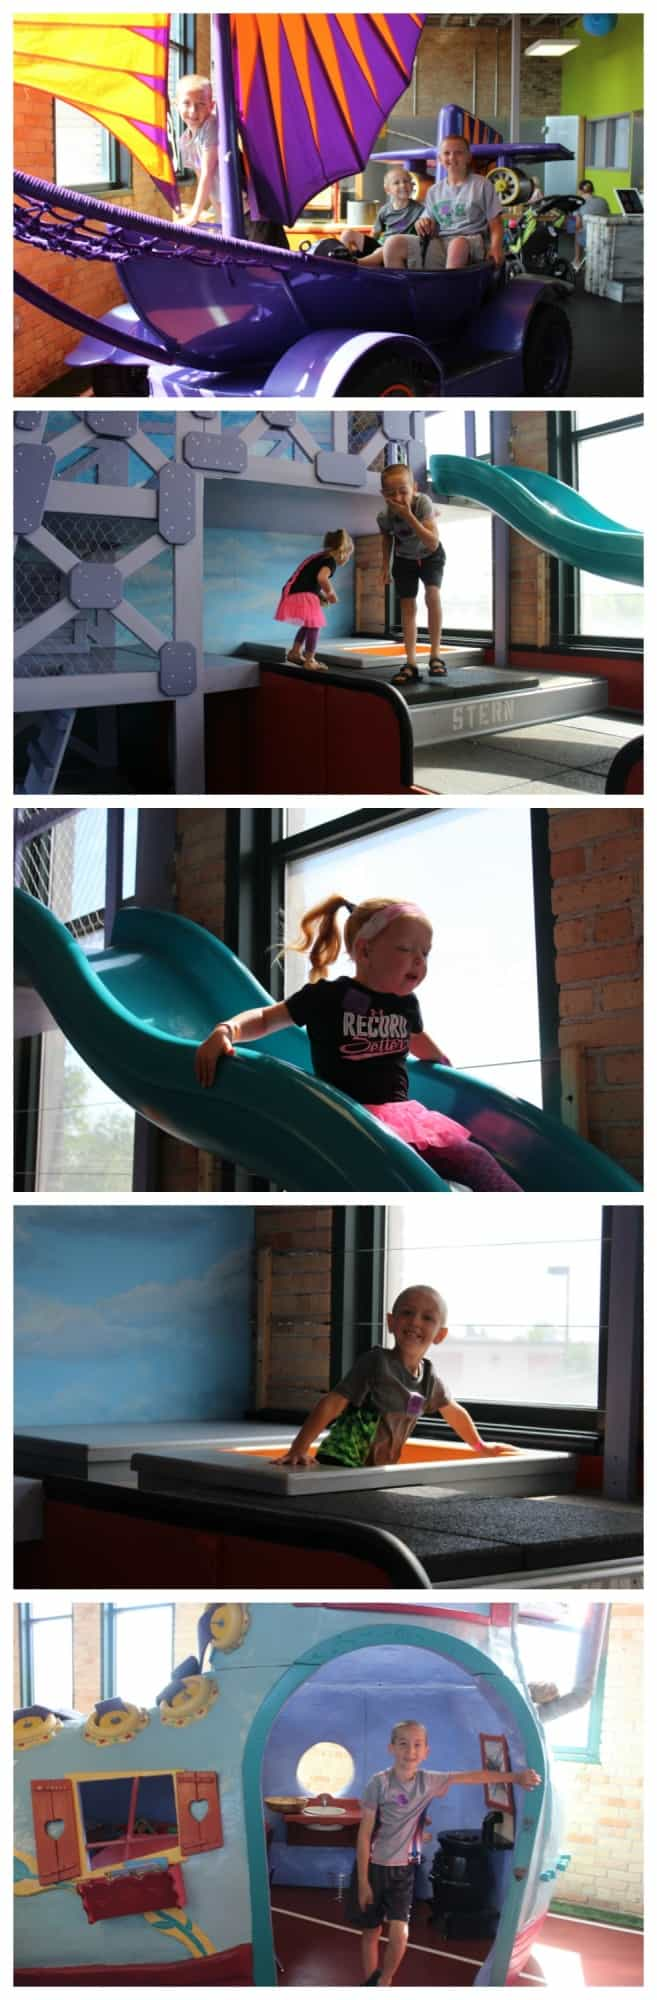 Family Friendly Attractions In Duluth MN - Duluth Children's Museum